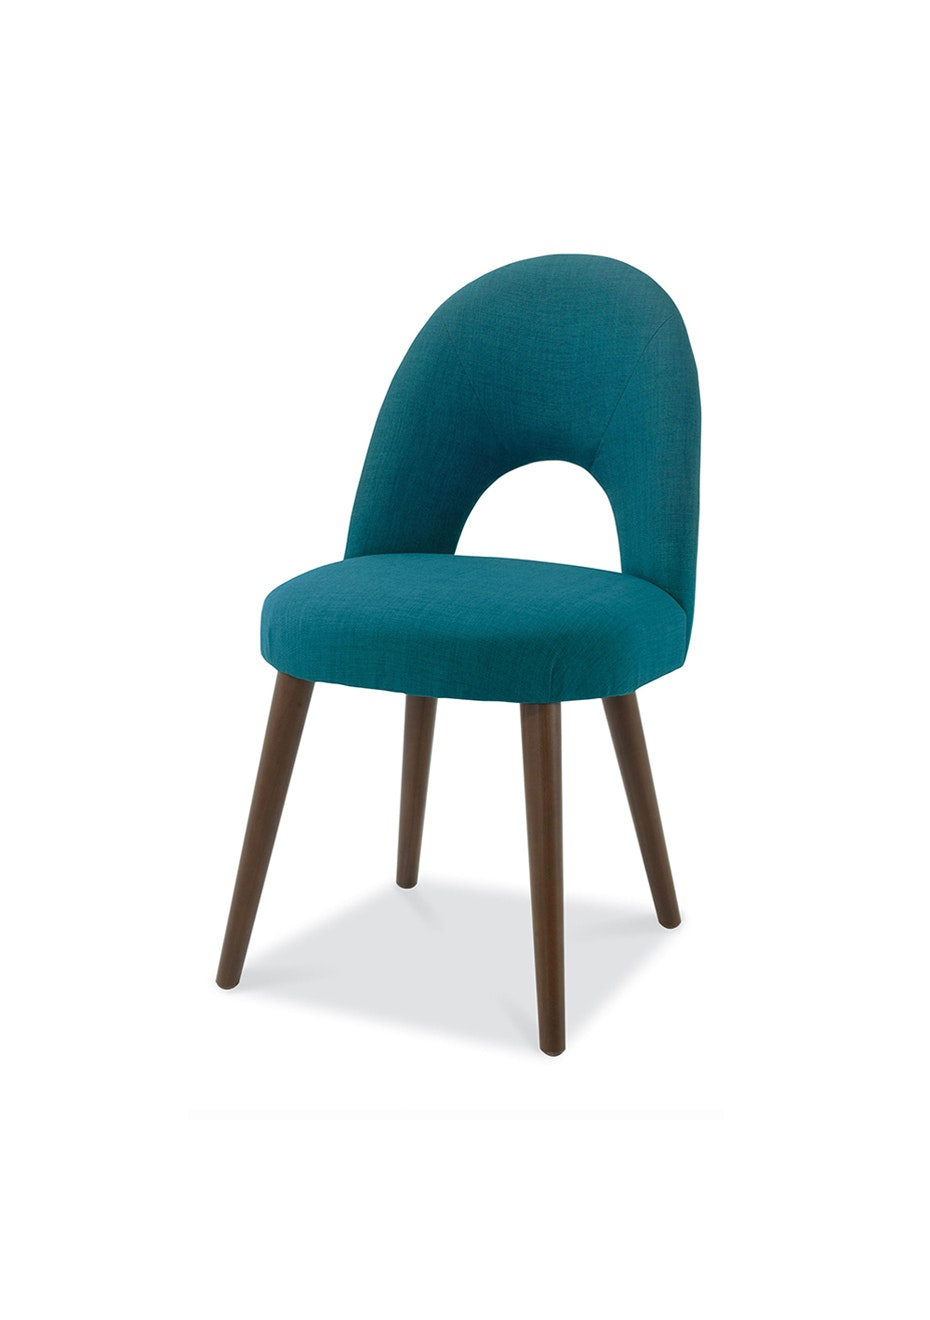 Furniture By Design - Oslo Chair- Walnut and Teal